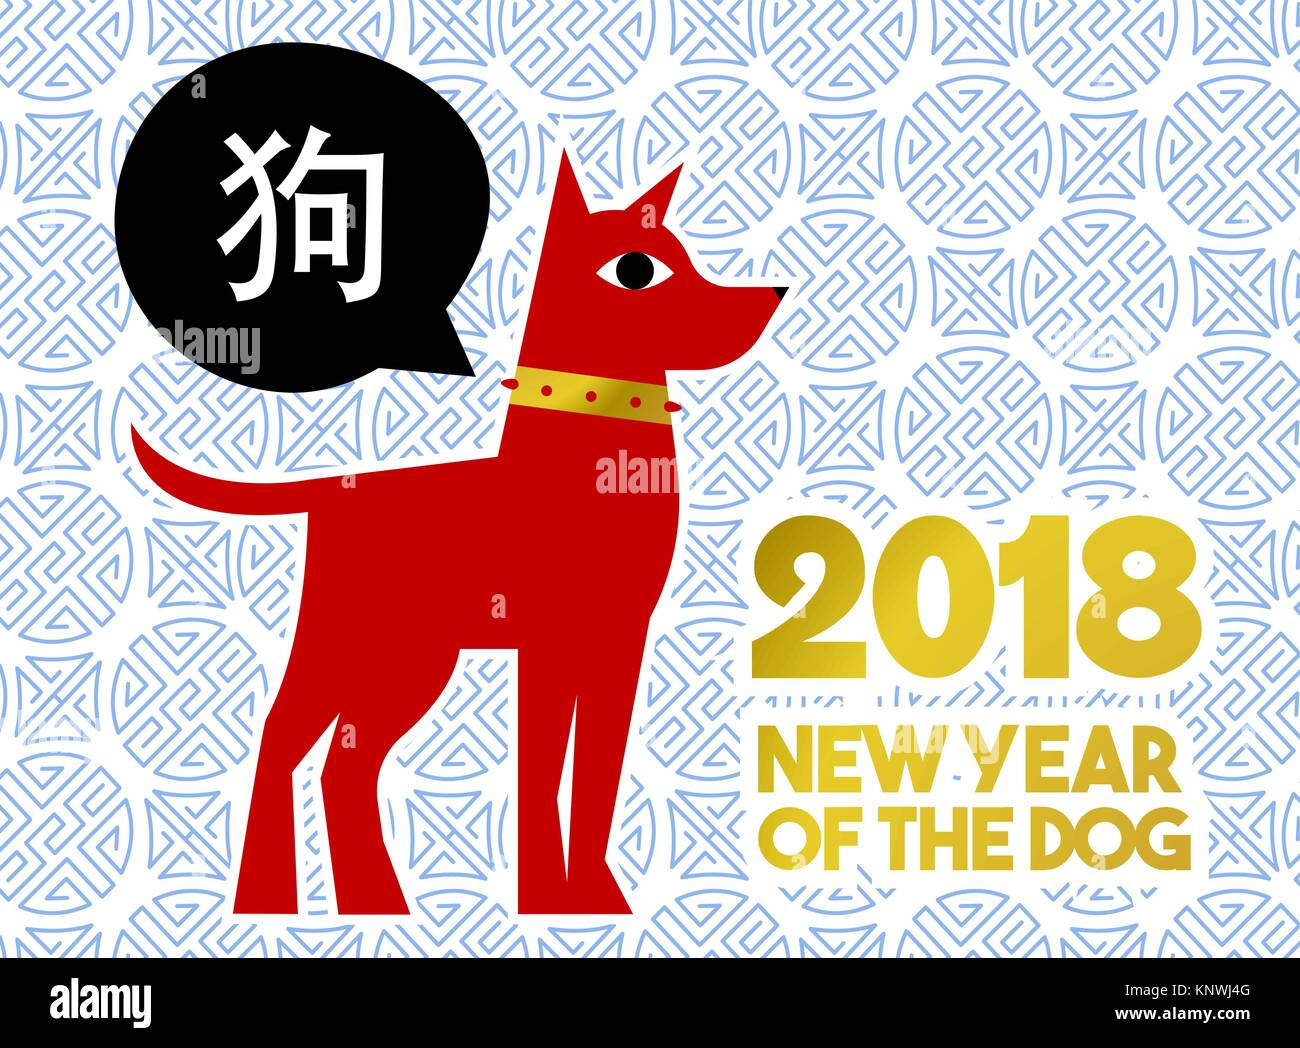 happy chinese new year 2018 greeting card modern flat art dog illustration with traditional asian calligraphy and gold color holiday quote eps10 vec